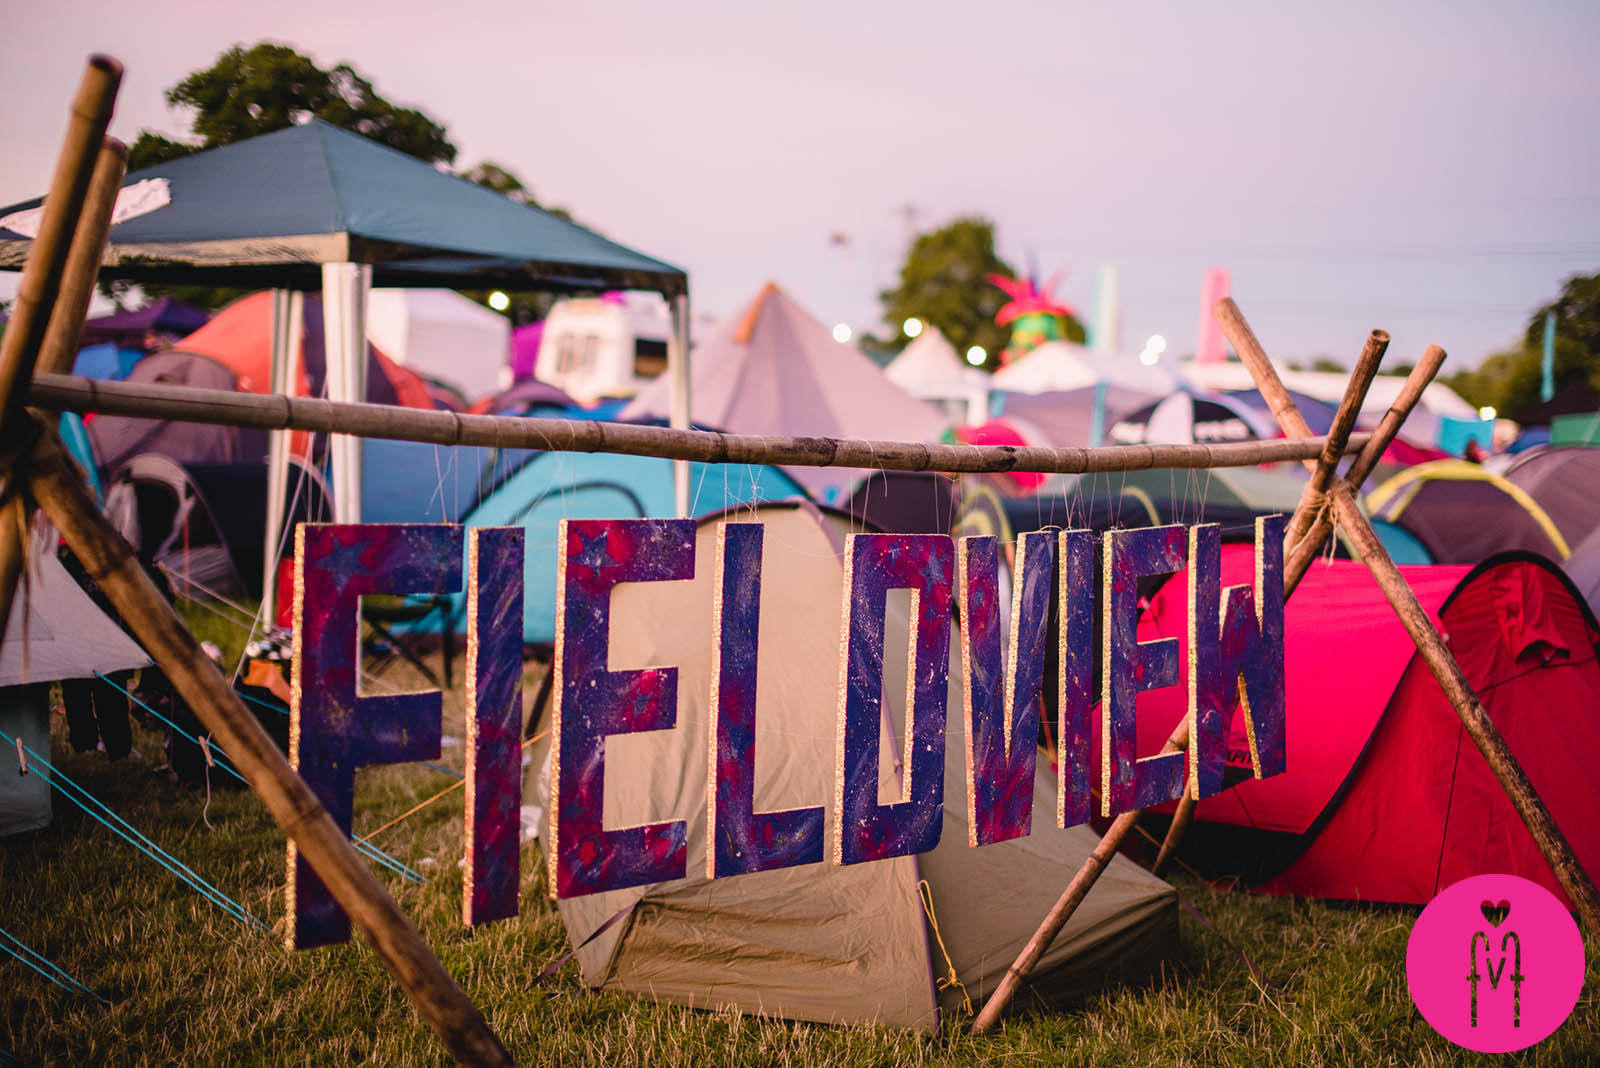 Festival season is in full swing, so who better to feature this month than Fieldview Festival! Fieldview is quite simply the best festival around. Founded in 2007 by brothers James and Dan Cameron, what started as a fun-time barbecue with a handful of friends in their back garden, has grown into a 3000 capacity, 3 day, music and arts event, exploding with glitter, happiness and funky beats! But what makes it extra special, is that it's run entirely by volunteers and any profit the festival makes is donated to charities that protect and help the planet and local communities. Cool hey! The hard work, dedication and love that's put in by the Cameron family, friends and volunteers of Fieldview is truly inspiring.  With the beautiful Wiltshire countryside as a backdrop, a mix of the UK's hottest bands and DJ's, as well as arts and crafts work shops, tasty local food and some weird and wonderful friends thrown in, this is by far my favourite weekend of the year! This year marks Fieldview's tenth anniversary and with just over 3 weeks to go, I caught up with the lovely James and Dan to find out what's in store..    How are you both and how's the planning going for Fieldview?   JAMES: All is going really well thanks! Ticket sales are looking great and well ahead of last year. We have got a great line up together and we are all dead excited! DAN: Really well thanks, everyones working super hard and it's great to see ticket sales going so well.    It's your 10 year anniversary which we are all super excited about, what can we expect this year?   JAMES: Ten years hey! Where does it go? For our tenth anniversary, as a team we have worked really hard to bring you a real treat of a line up that reflects the festival's growth and evolution over the last ten years. We have tried to bring back some FVF classic artists. Submotion Orchestra for example played in 2011 in the afternoon and now they are returning in 2016 to headline our main stage. So our tenth year is a mix of the hotte